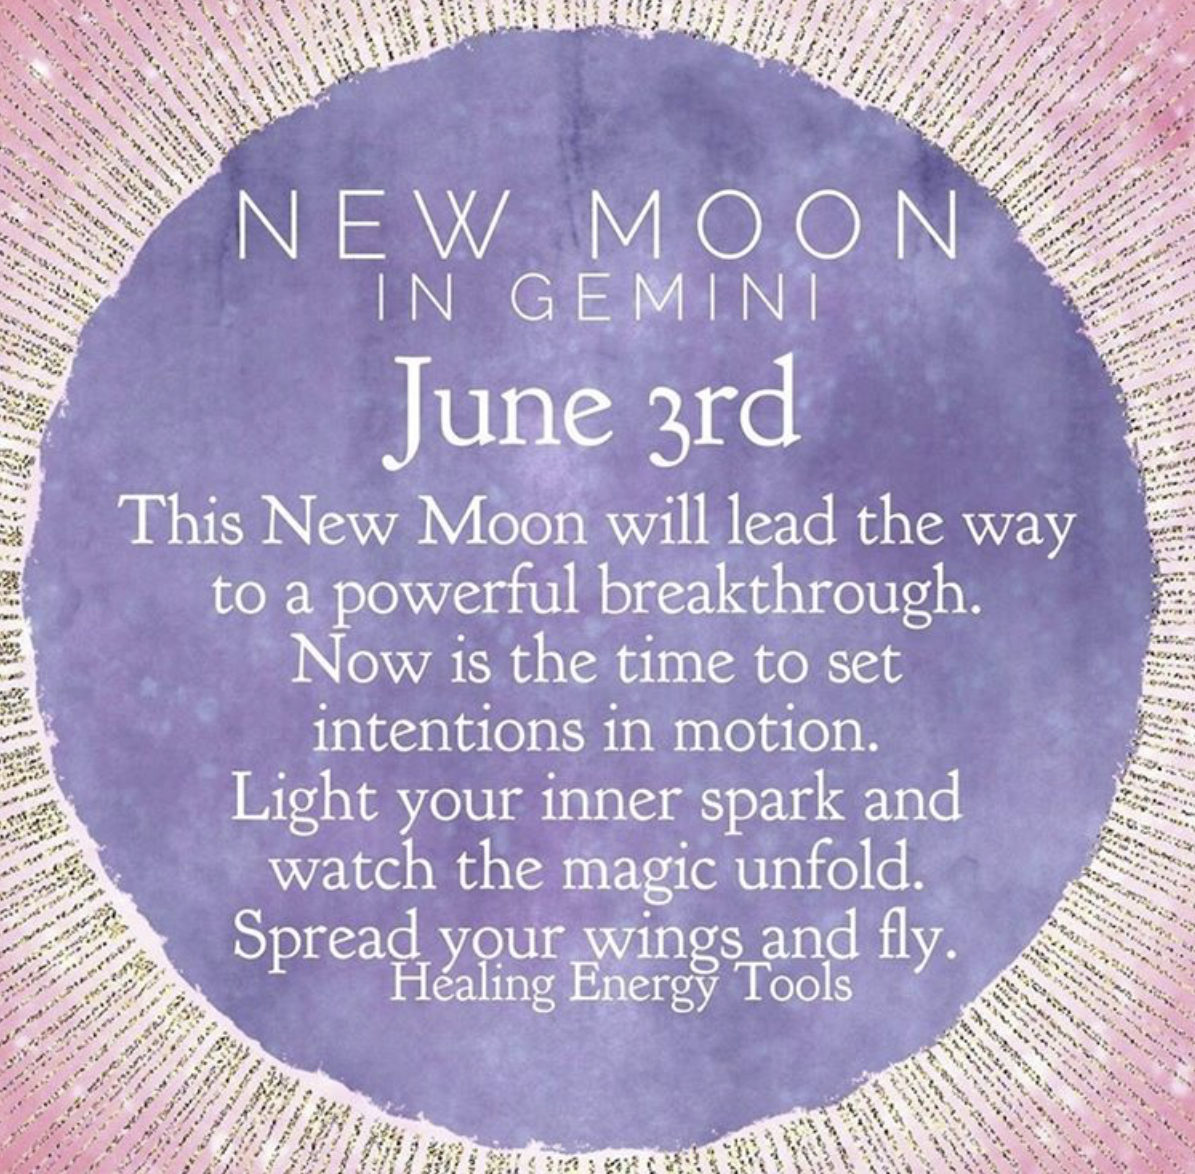 New moon in Gemini ♊️- June 3rd